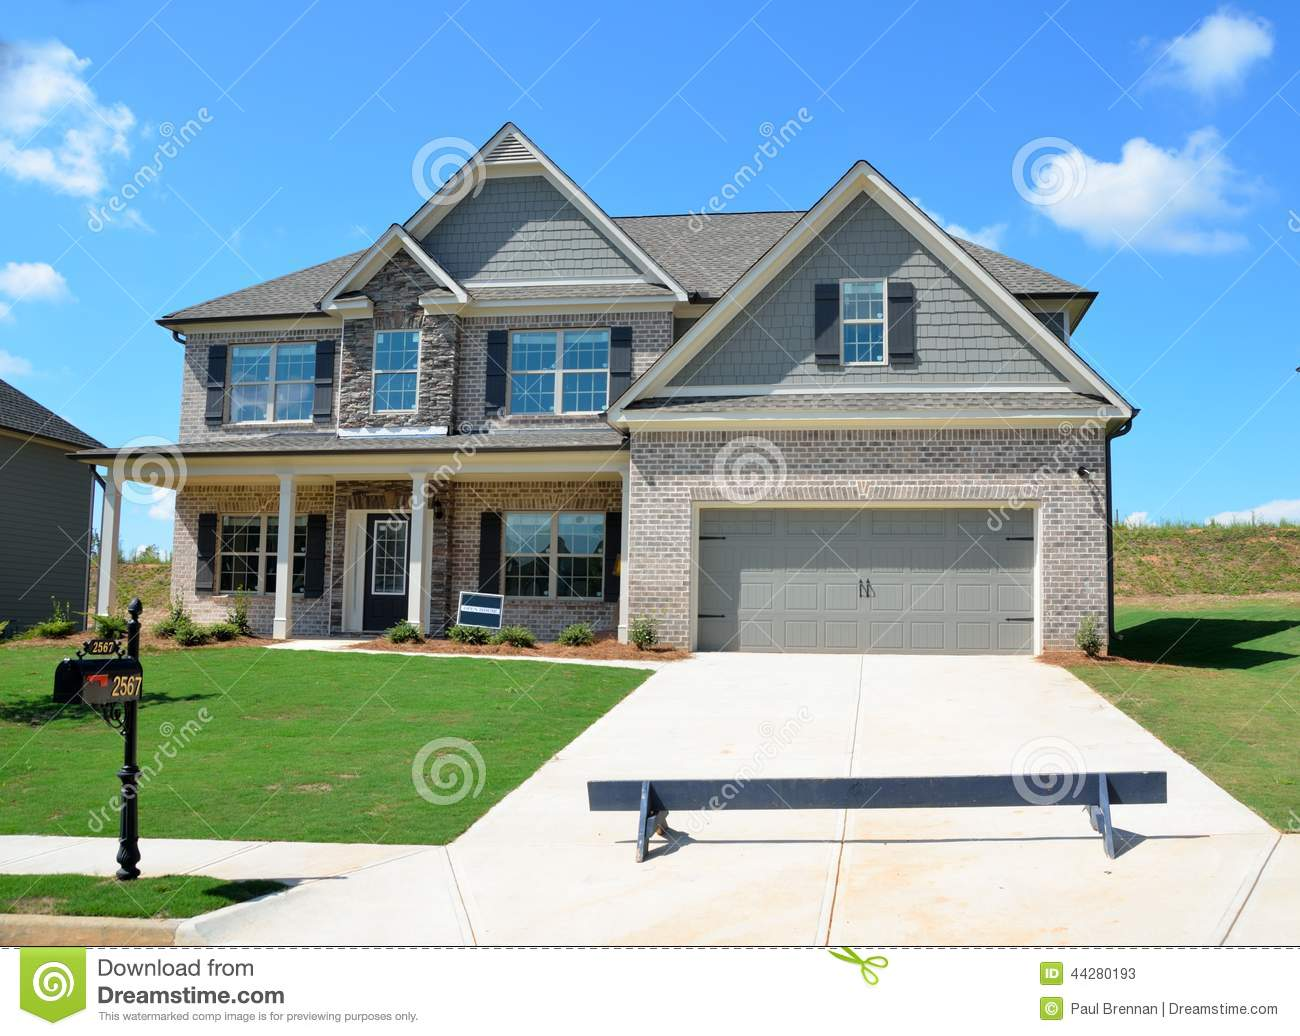 Newly constructed modern house for sale stock photo for Modern photography for sale